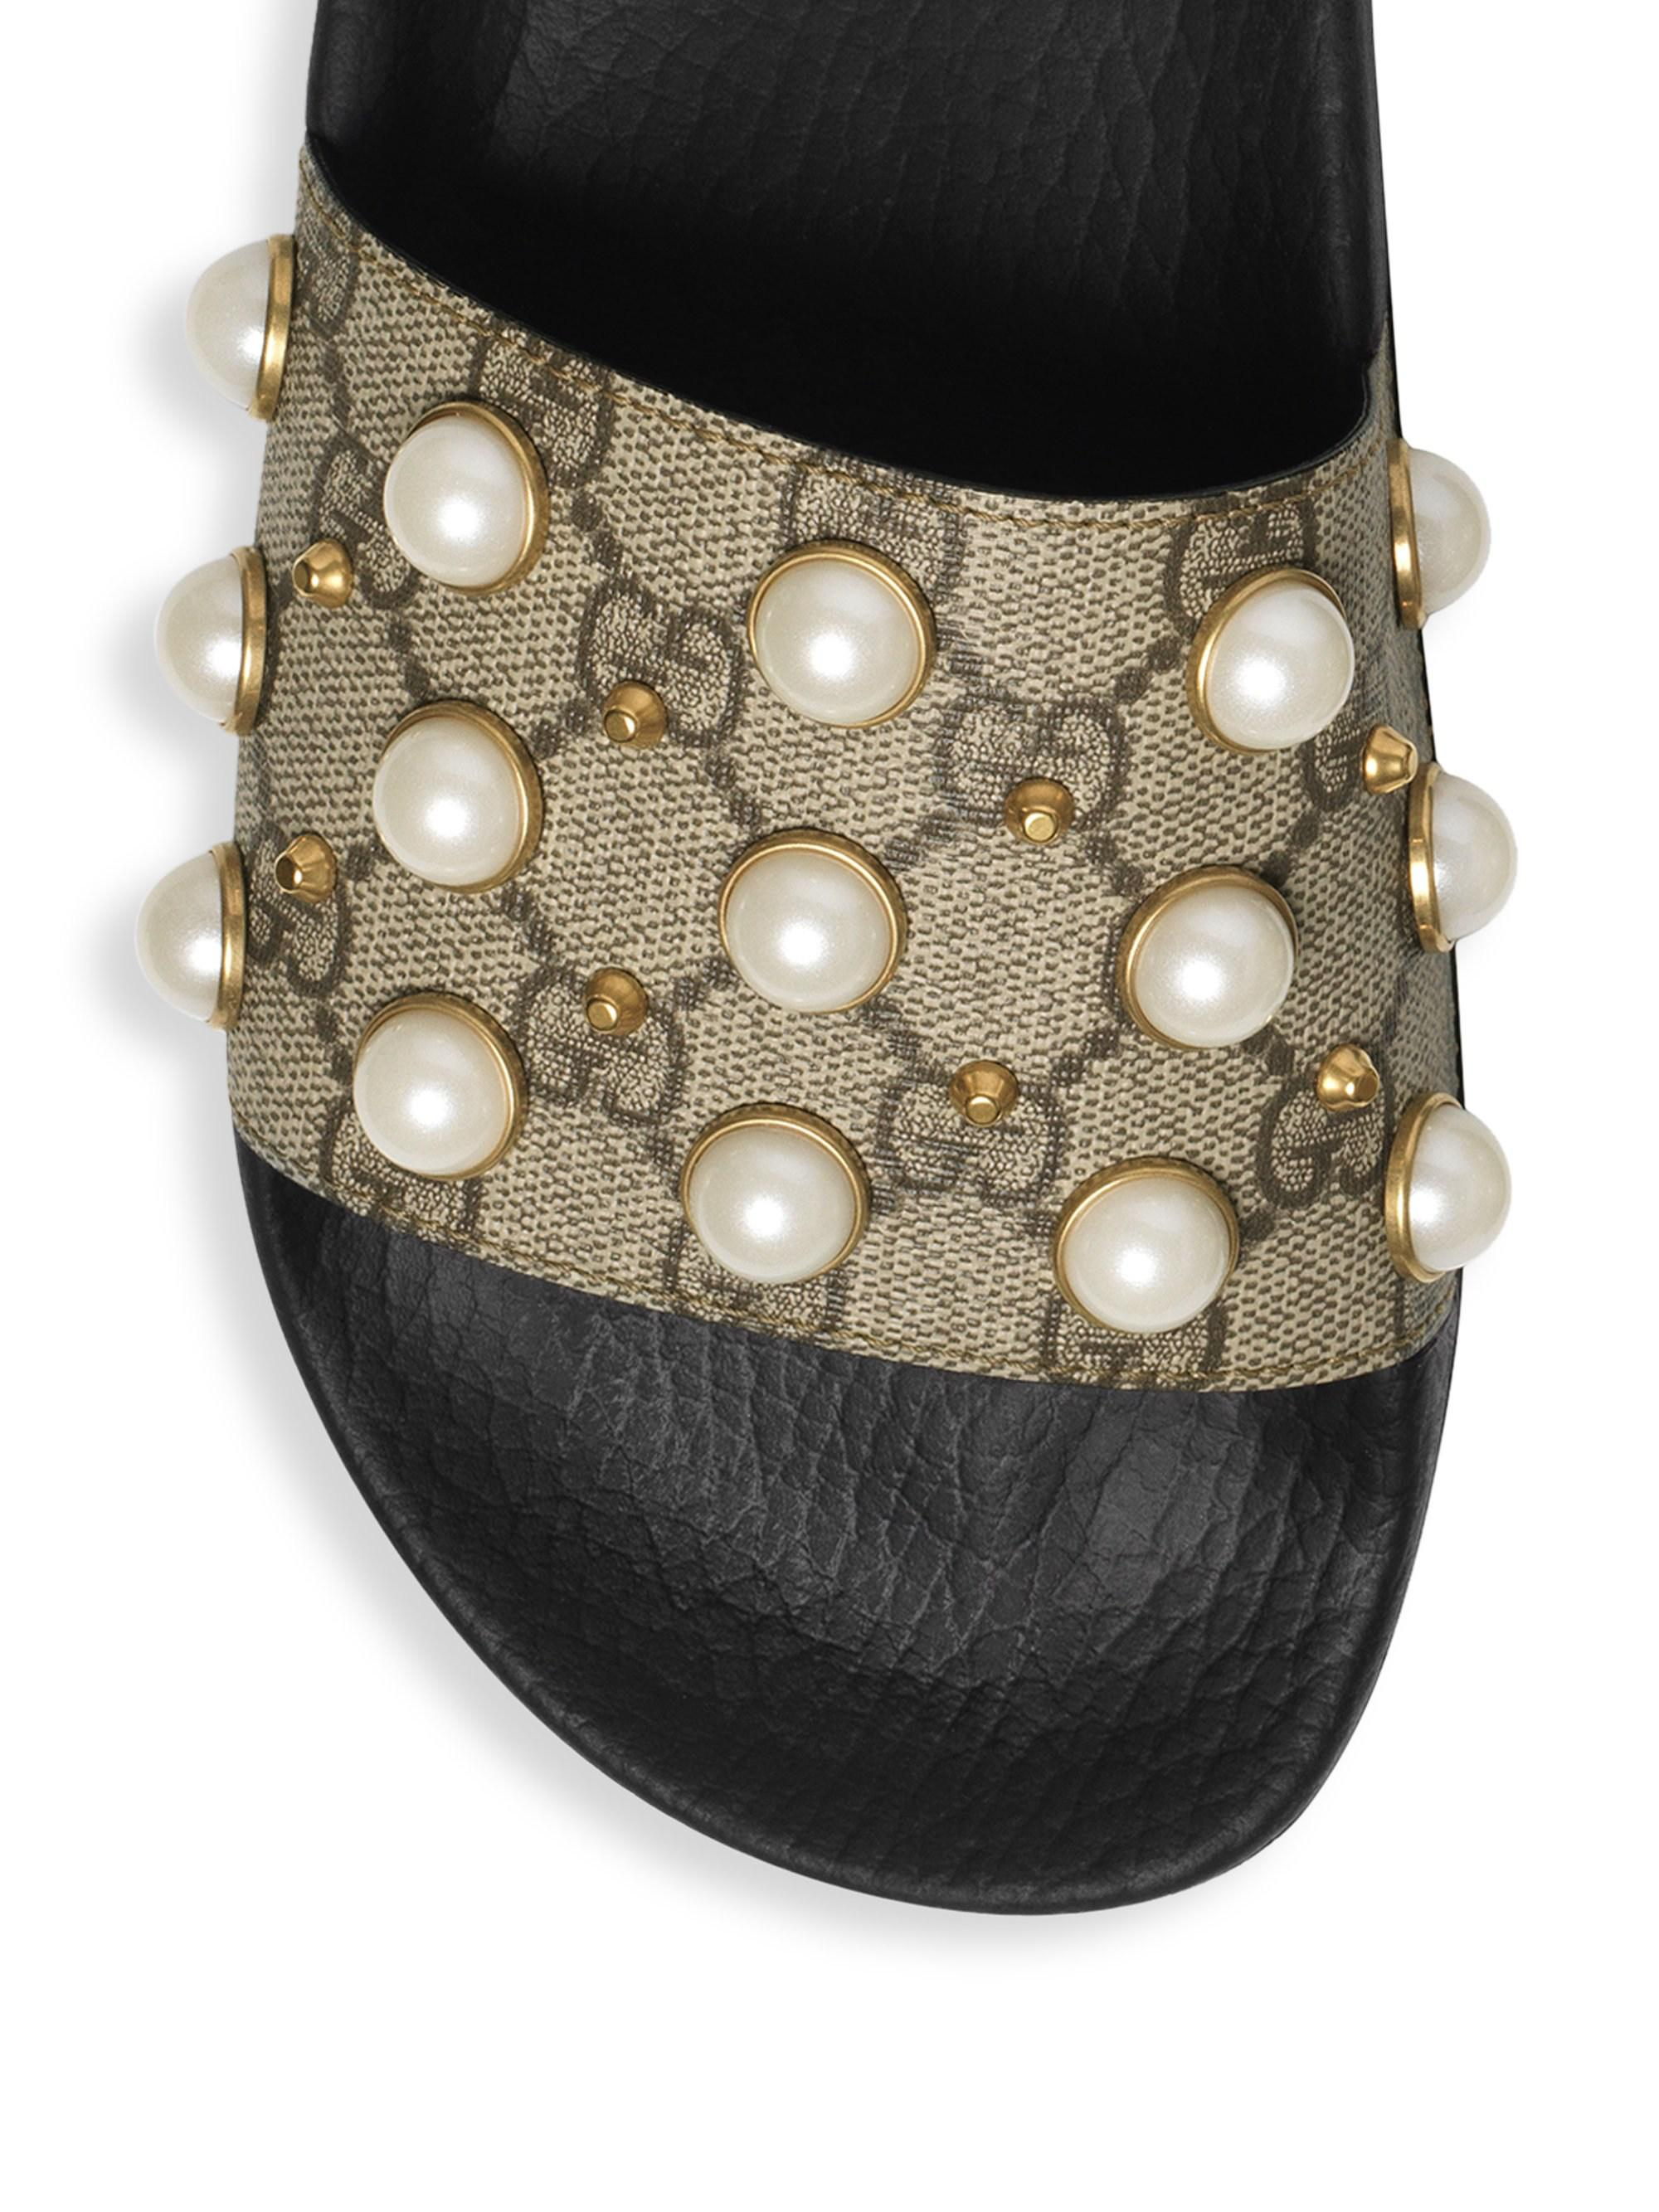 021c6caf7 Gucci GG Supreme Slides With Pearls in Natural - Lyst